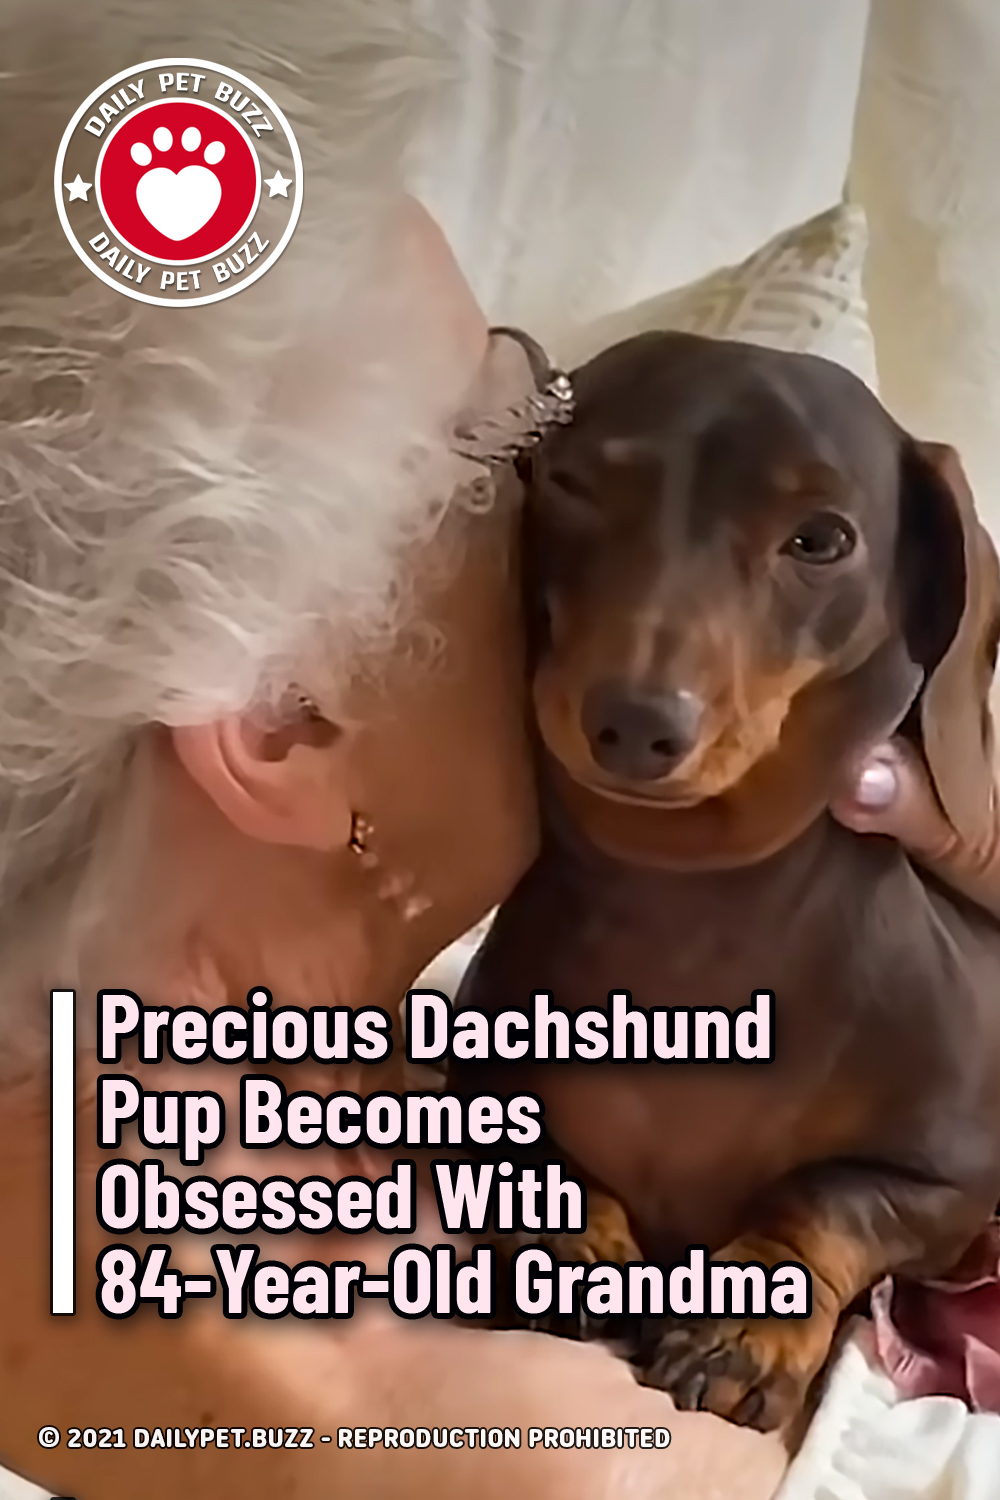 Precious Dachshund Pup Becomes Obsessed With 84-Year-Old Grandma